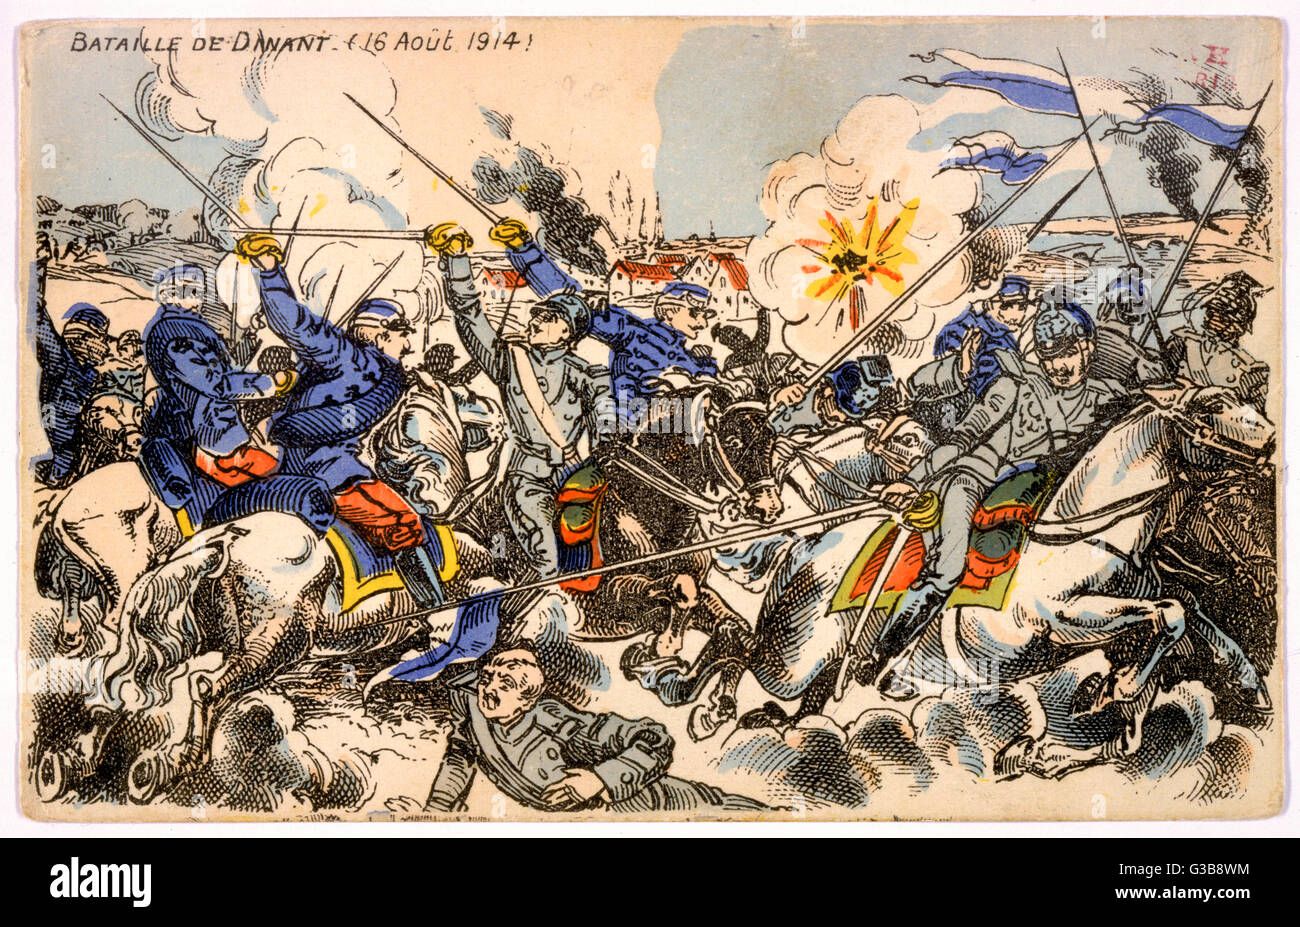 DINANT, Belgium French cavalry resist the  German invasion, but are  forced to retreat : the  fighting is followed - Stock Image